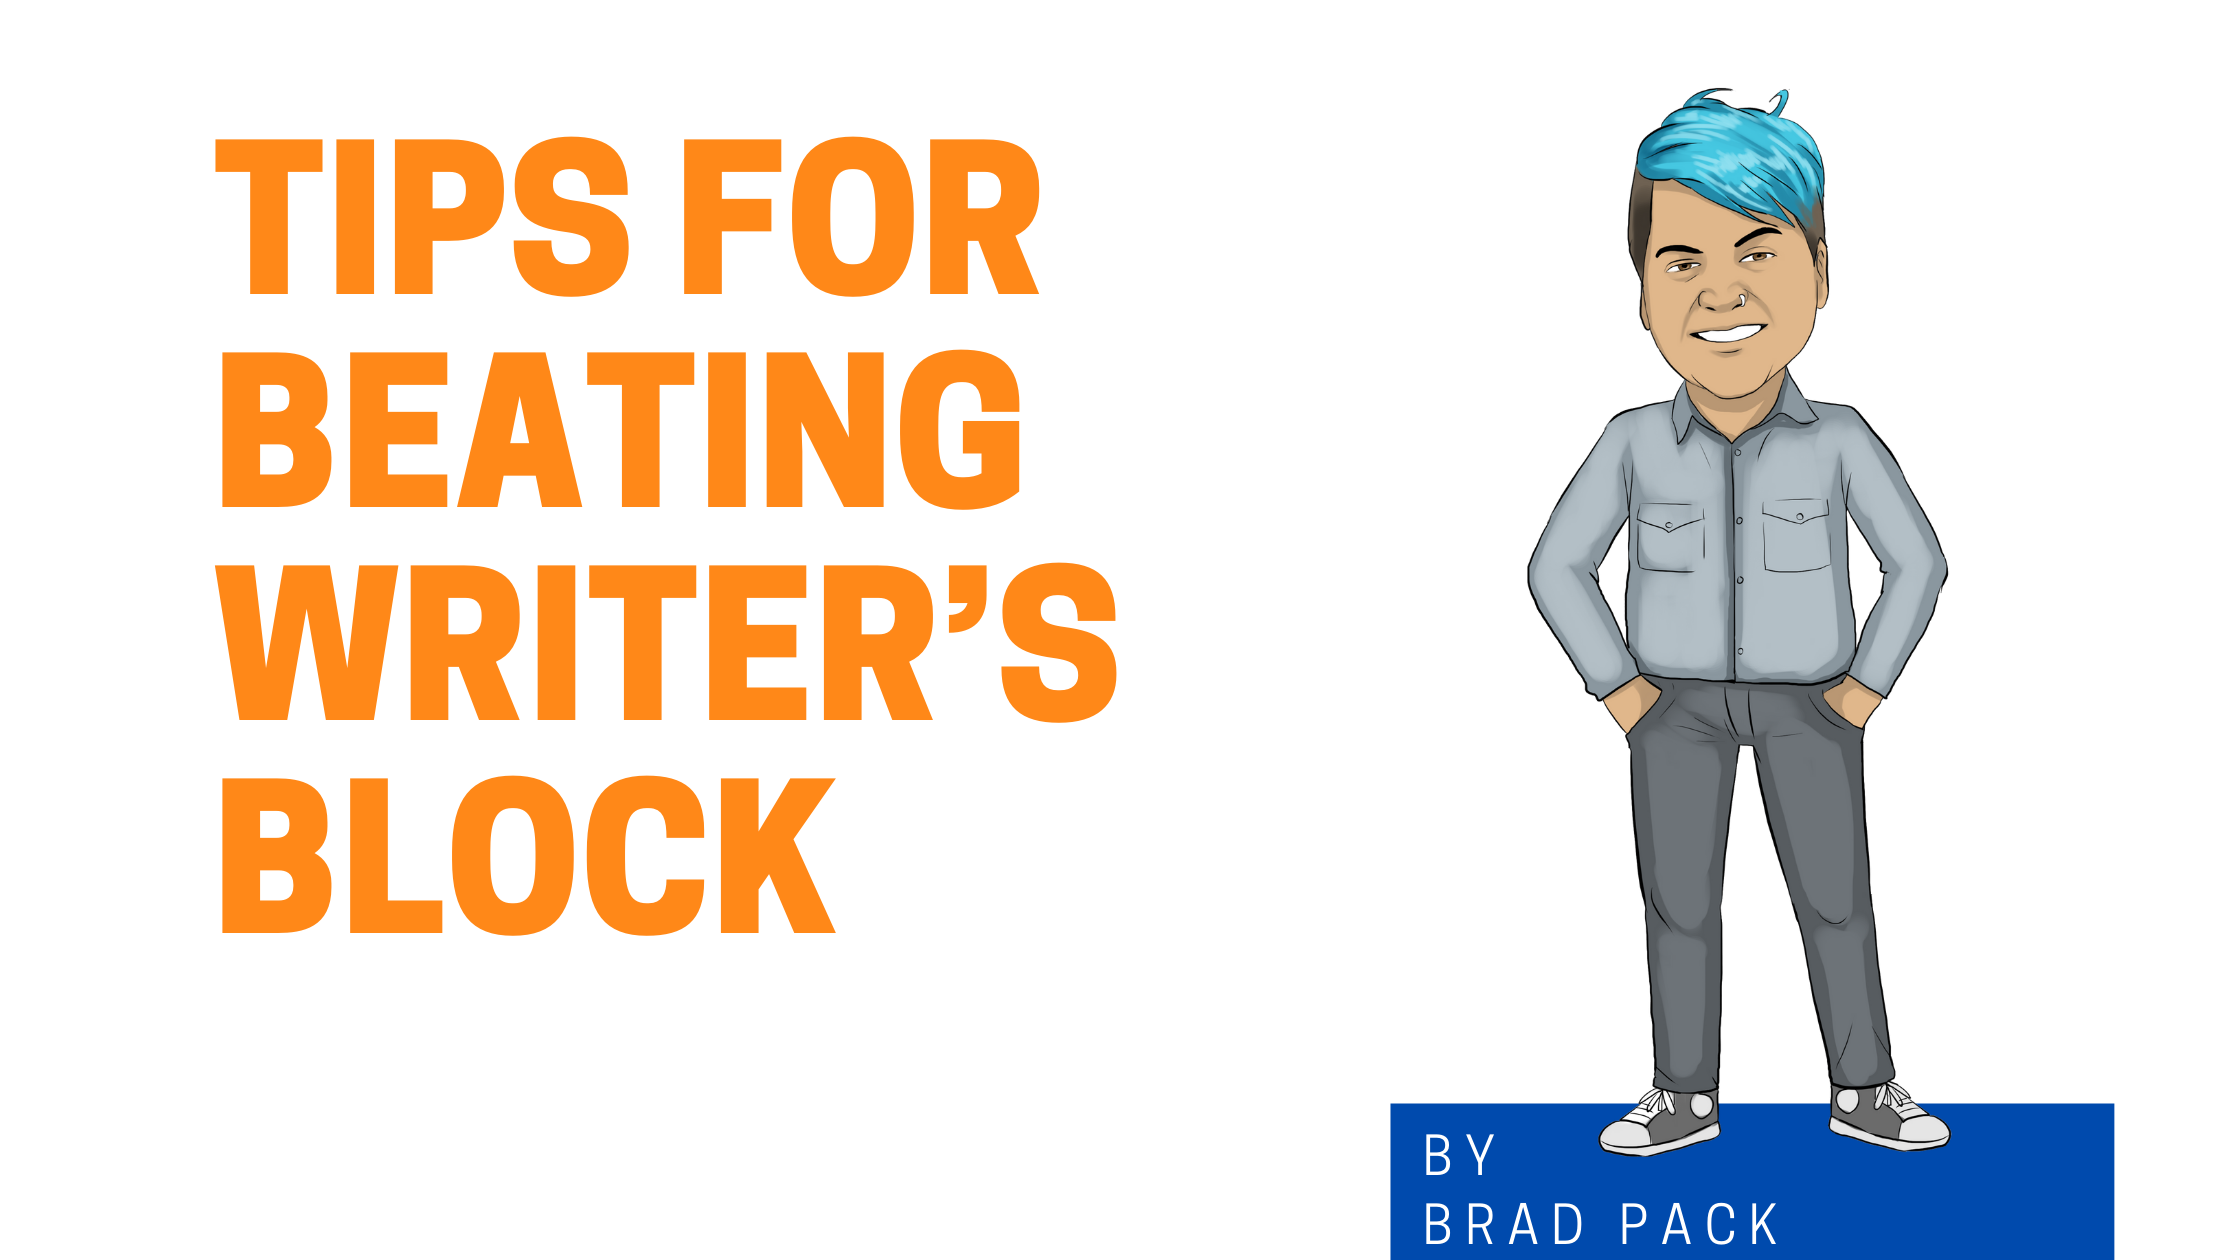 Tips for Beating Writer's Block Graphic